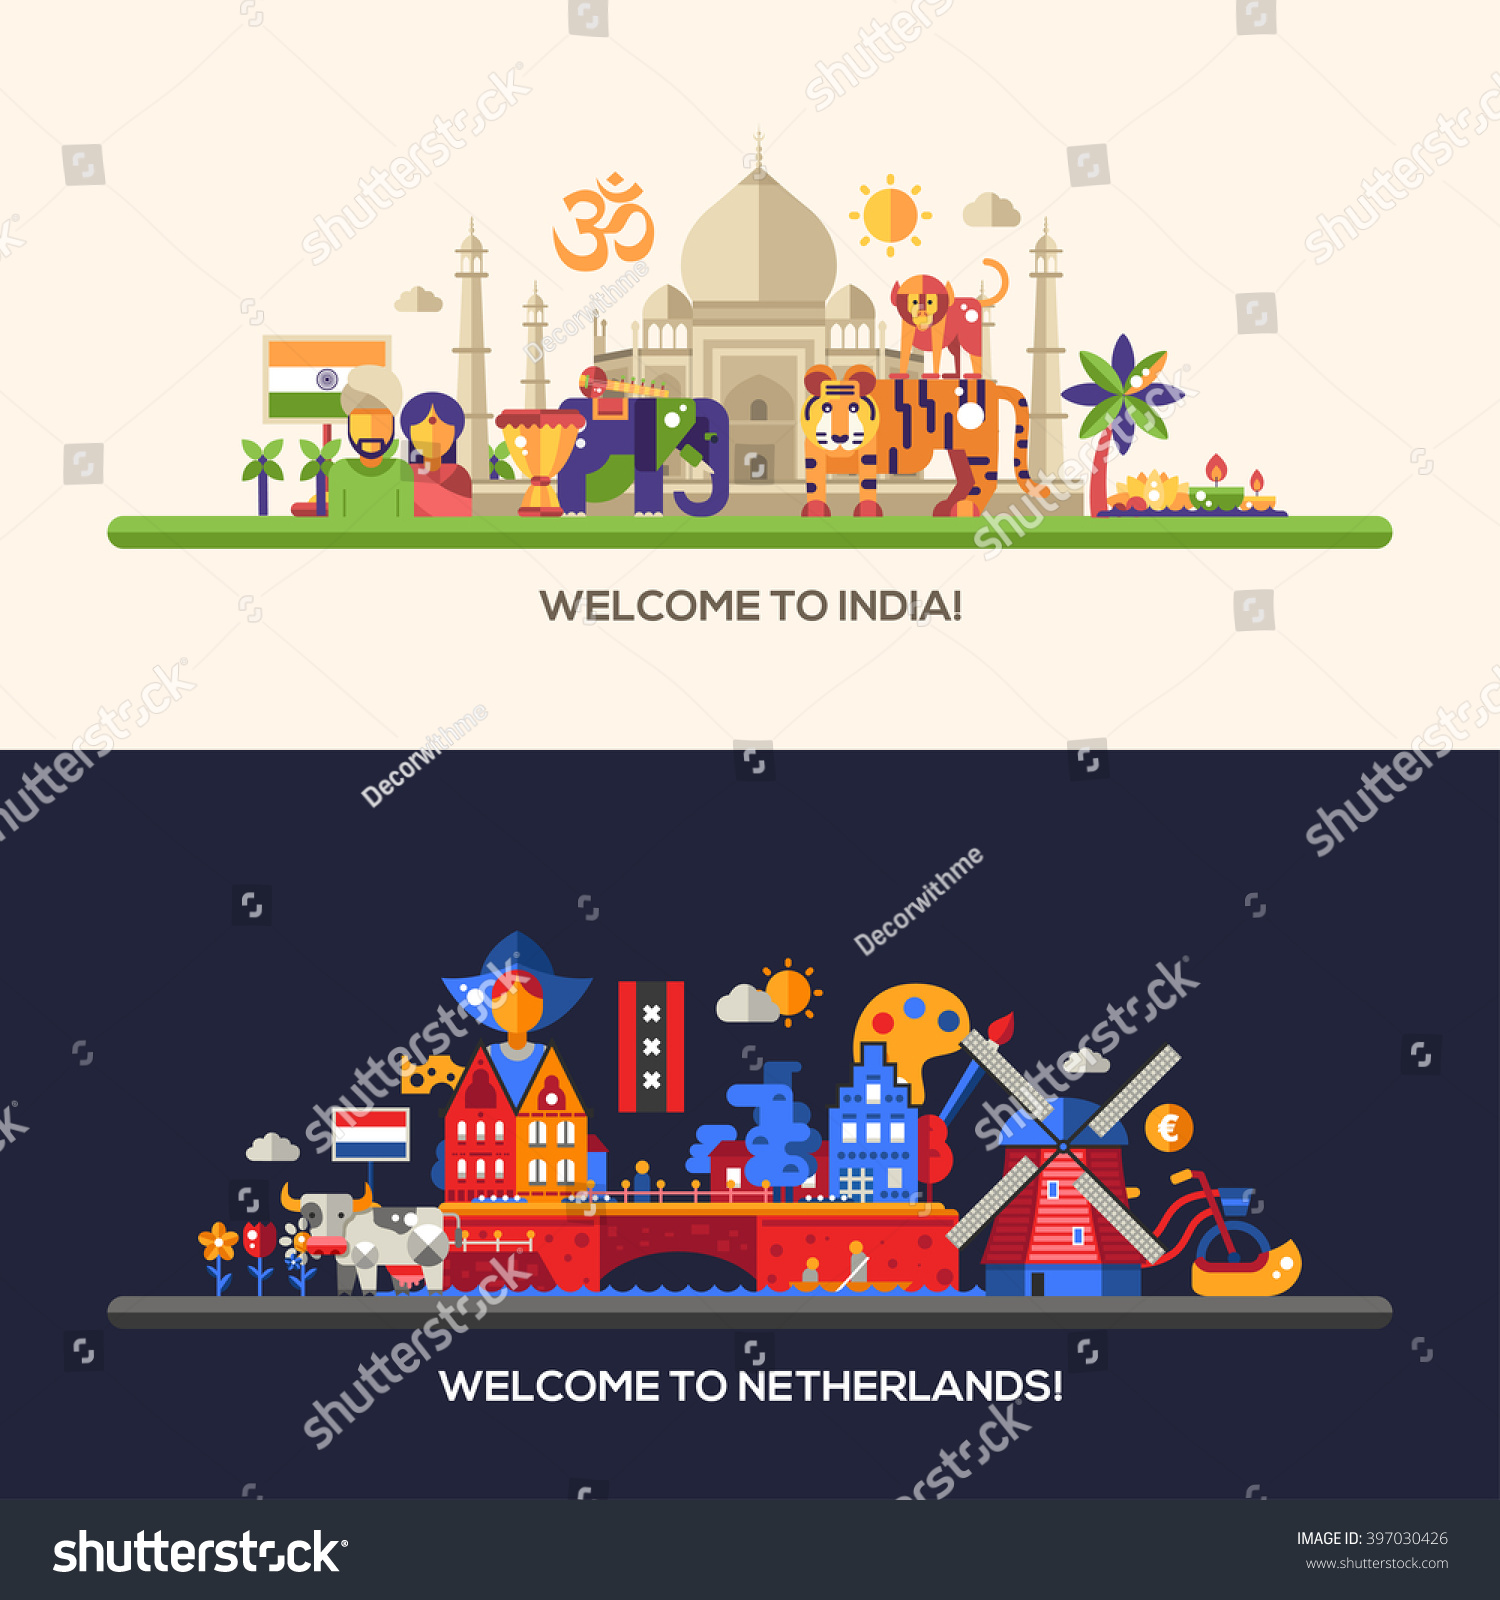 Tourism India Banners Construction Banners